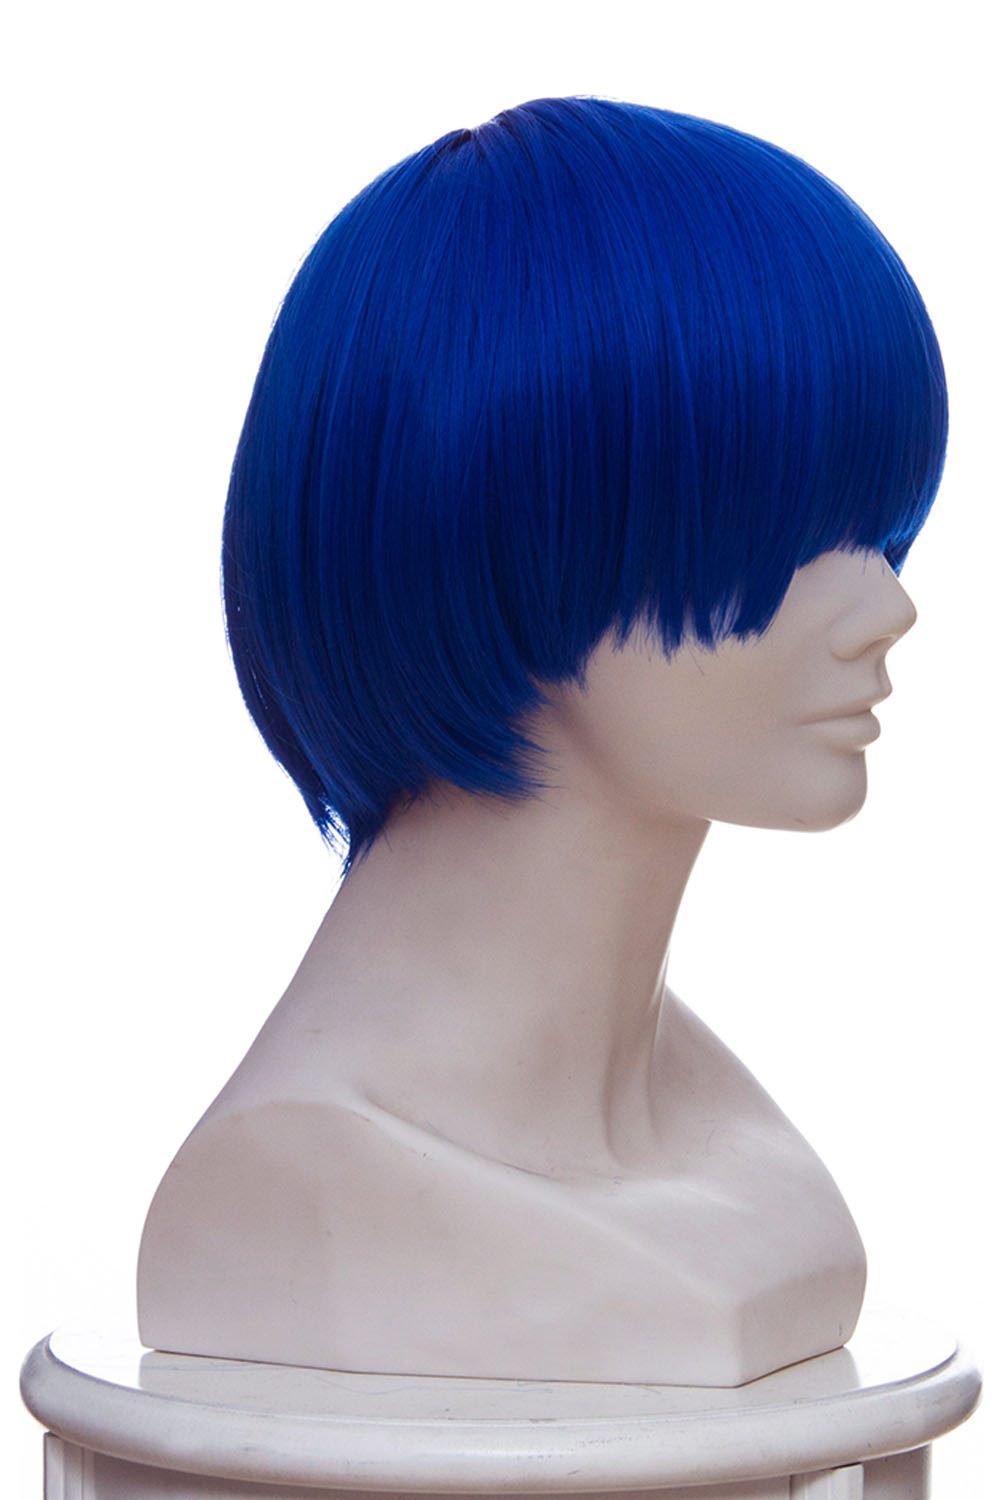 Land Of The Lustrous Cosplay Wigs Houseki No Kuni Lapis Lazuli Wig Heat Resistant Synthetic Hair Cosplay Wig + Wig Cap